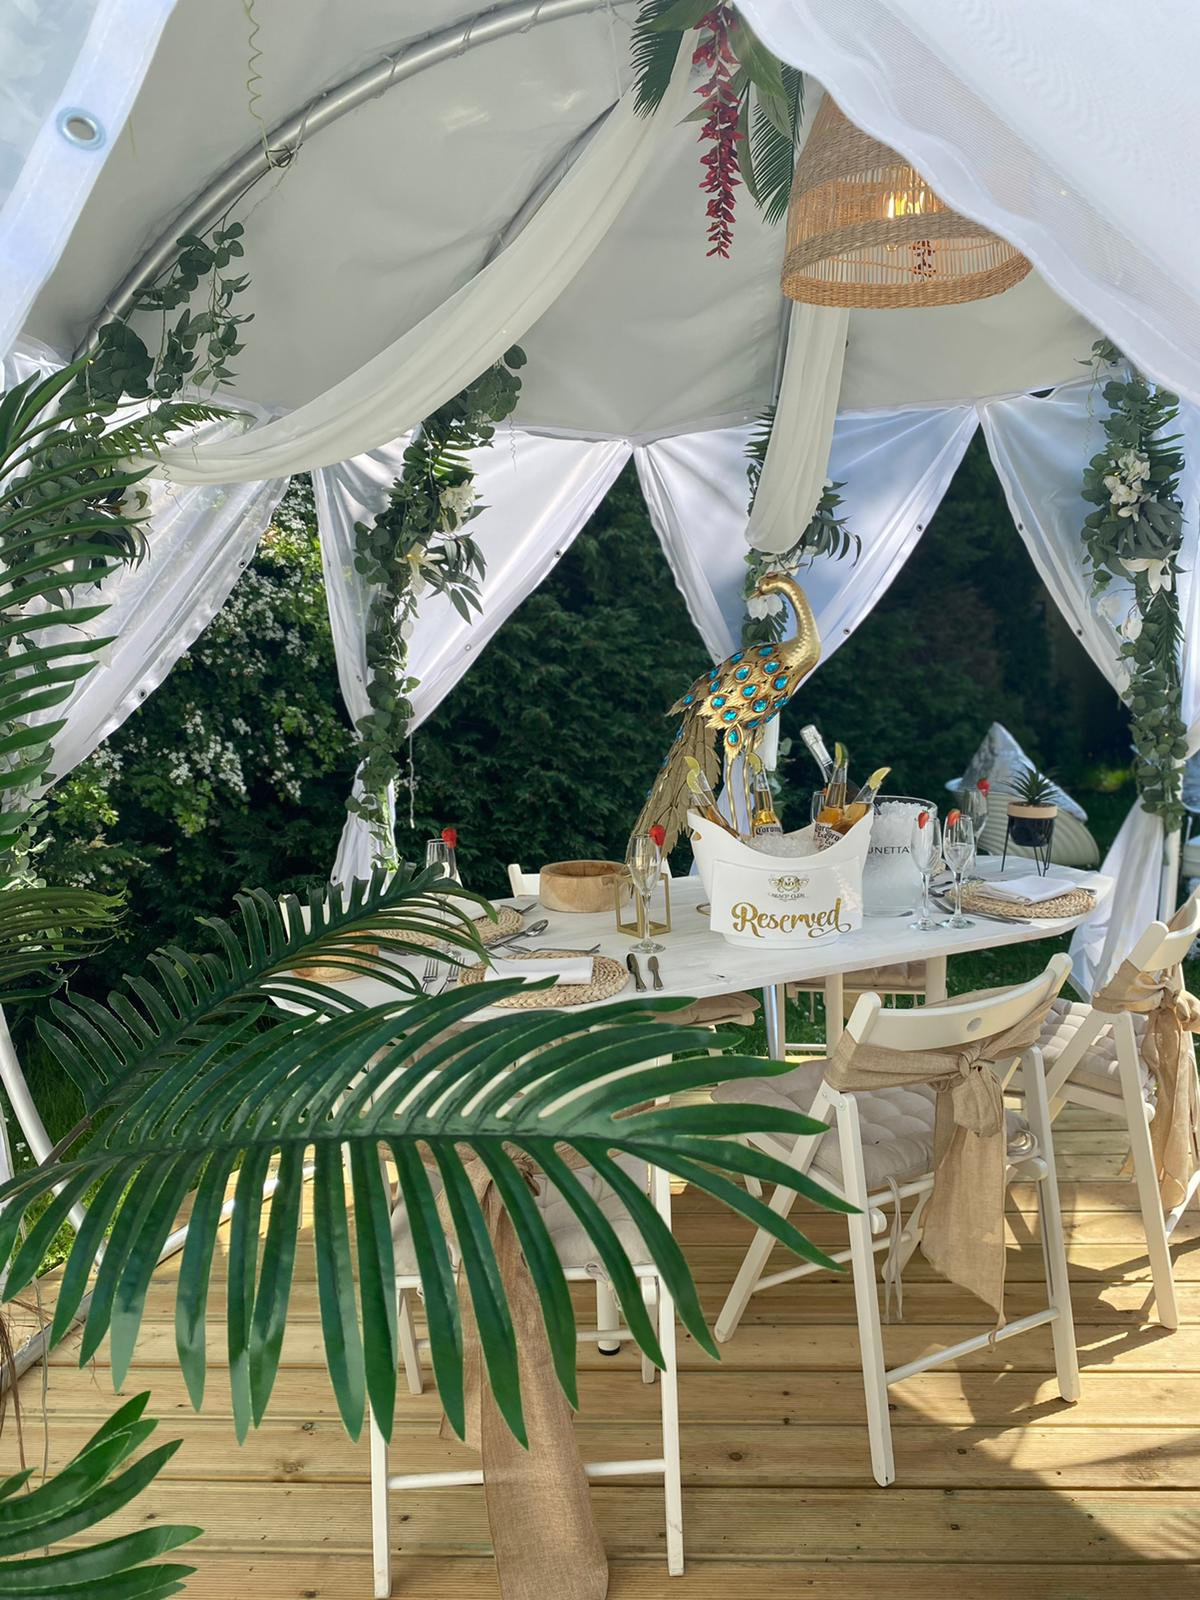 FULL DAY HIRE BEACH CLUB PACKAGE  12-6pm